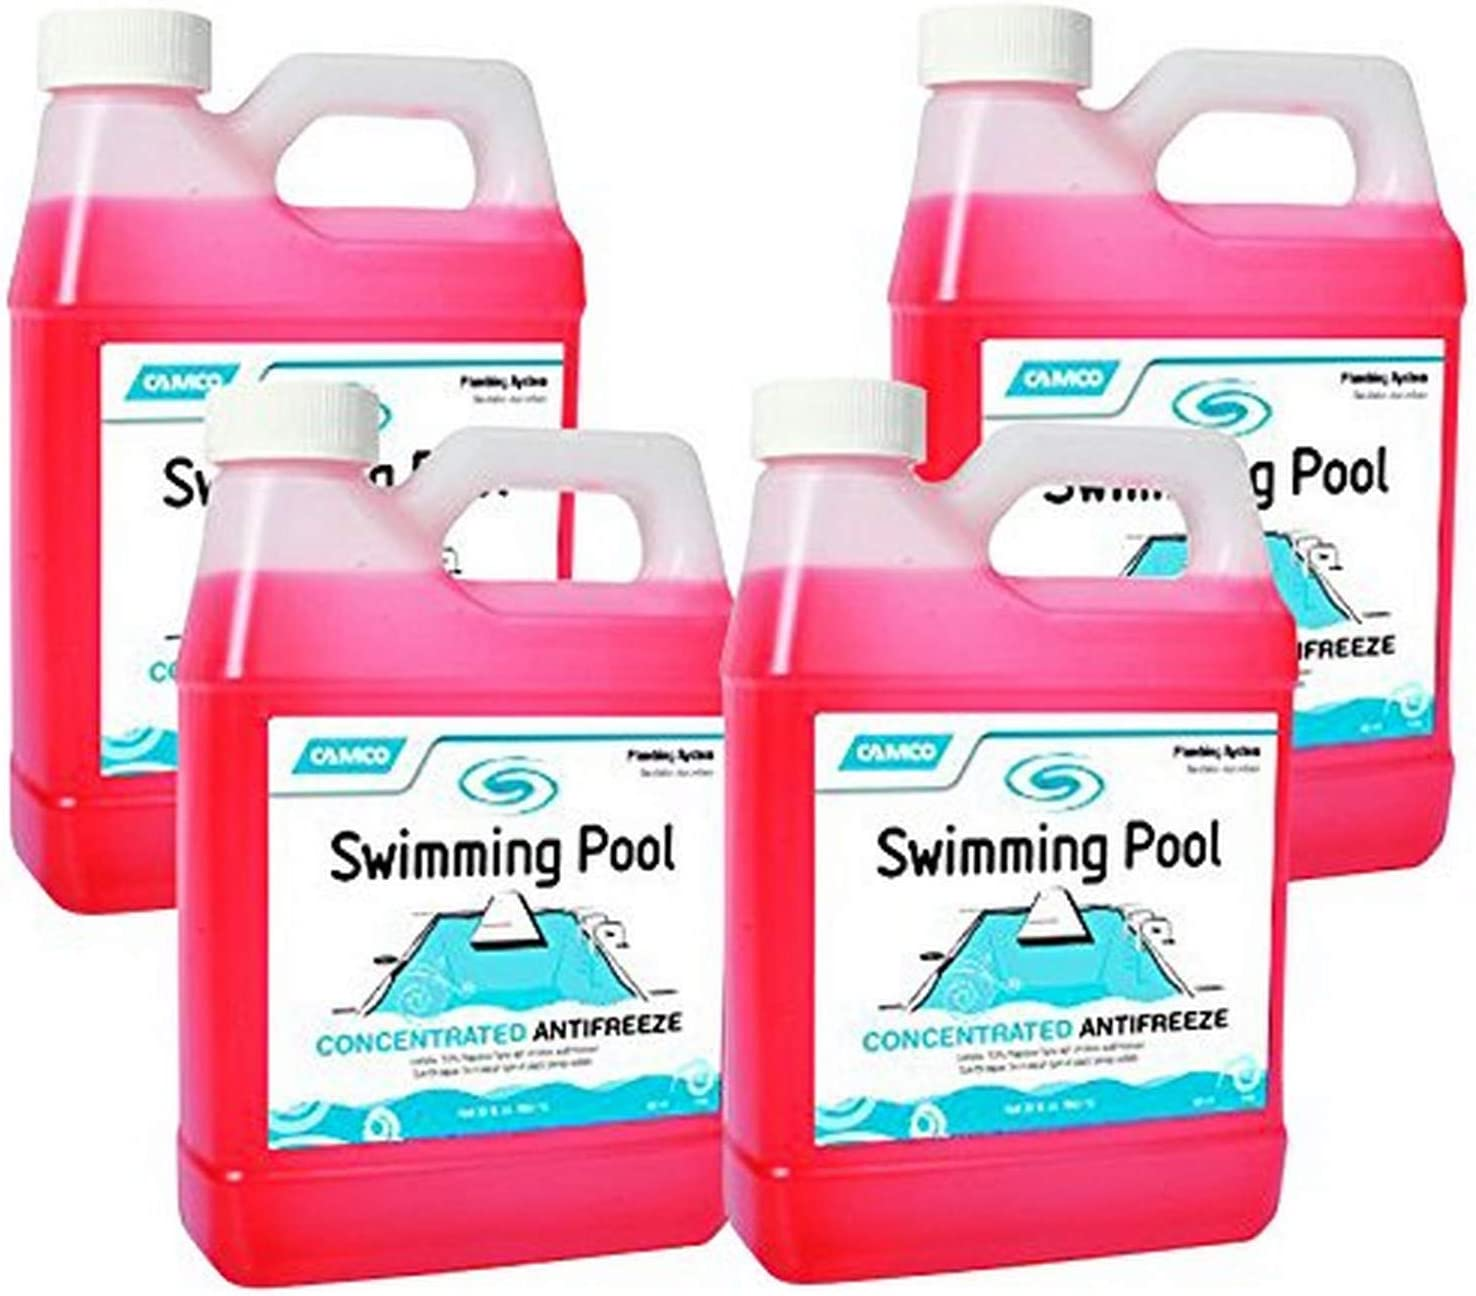 Camco 30054 04 Swimming Pool Concentrated Antifreeze 4 Pack 1 Quart Amazon Ca Patio Lawn Garden